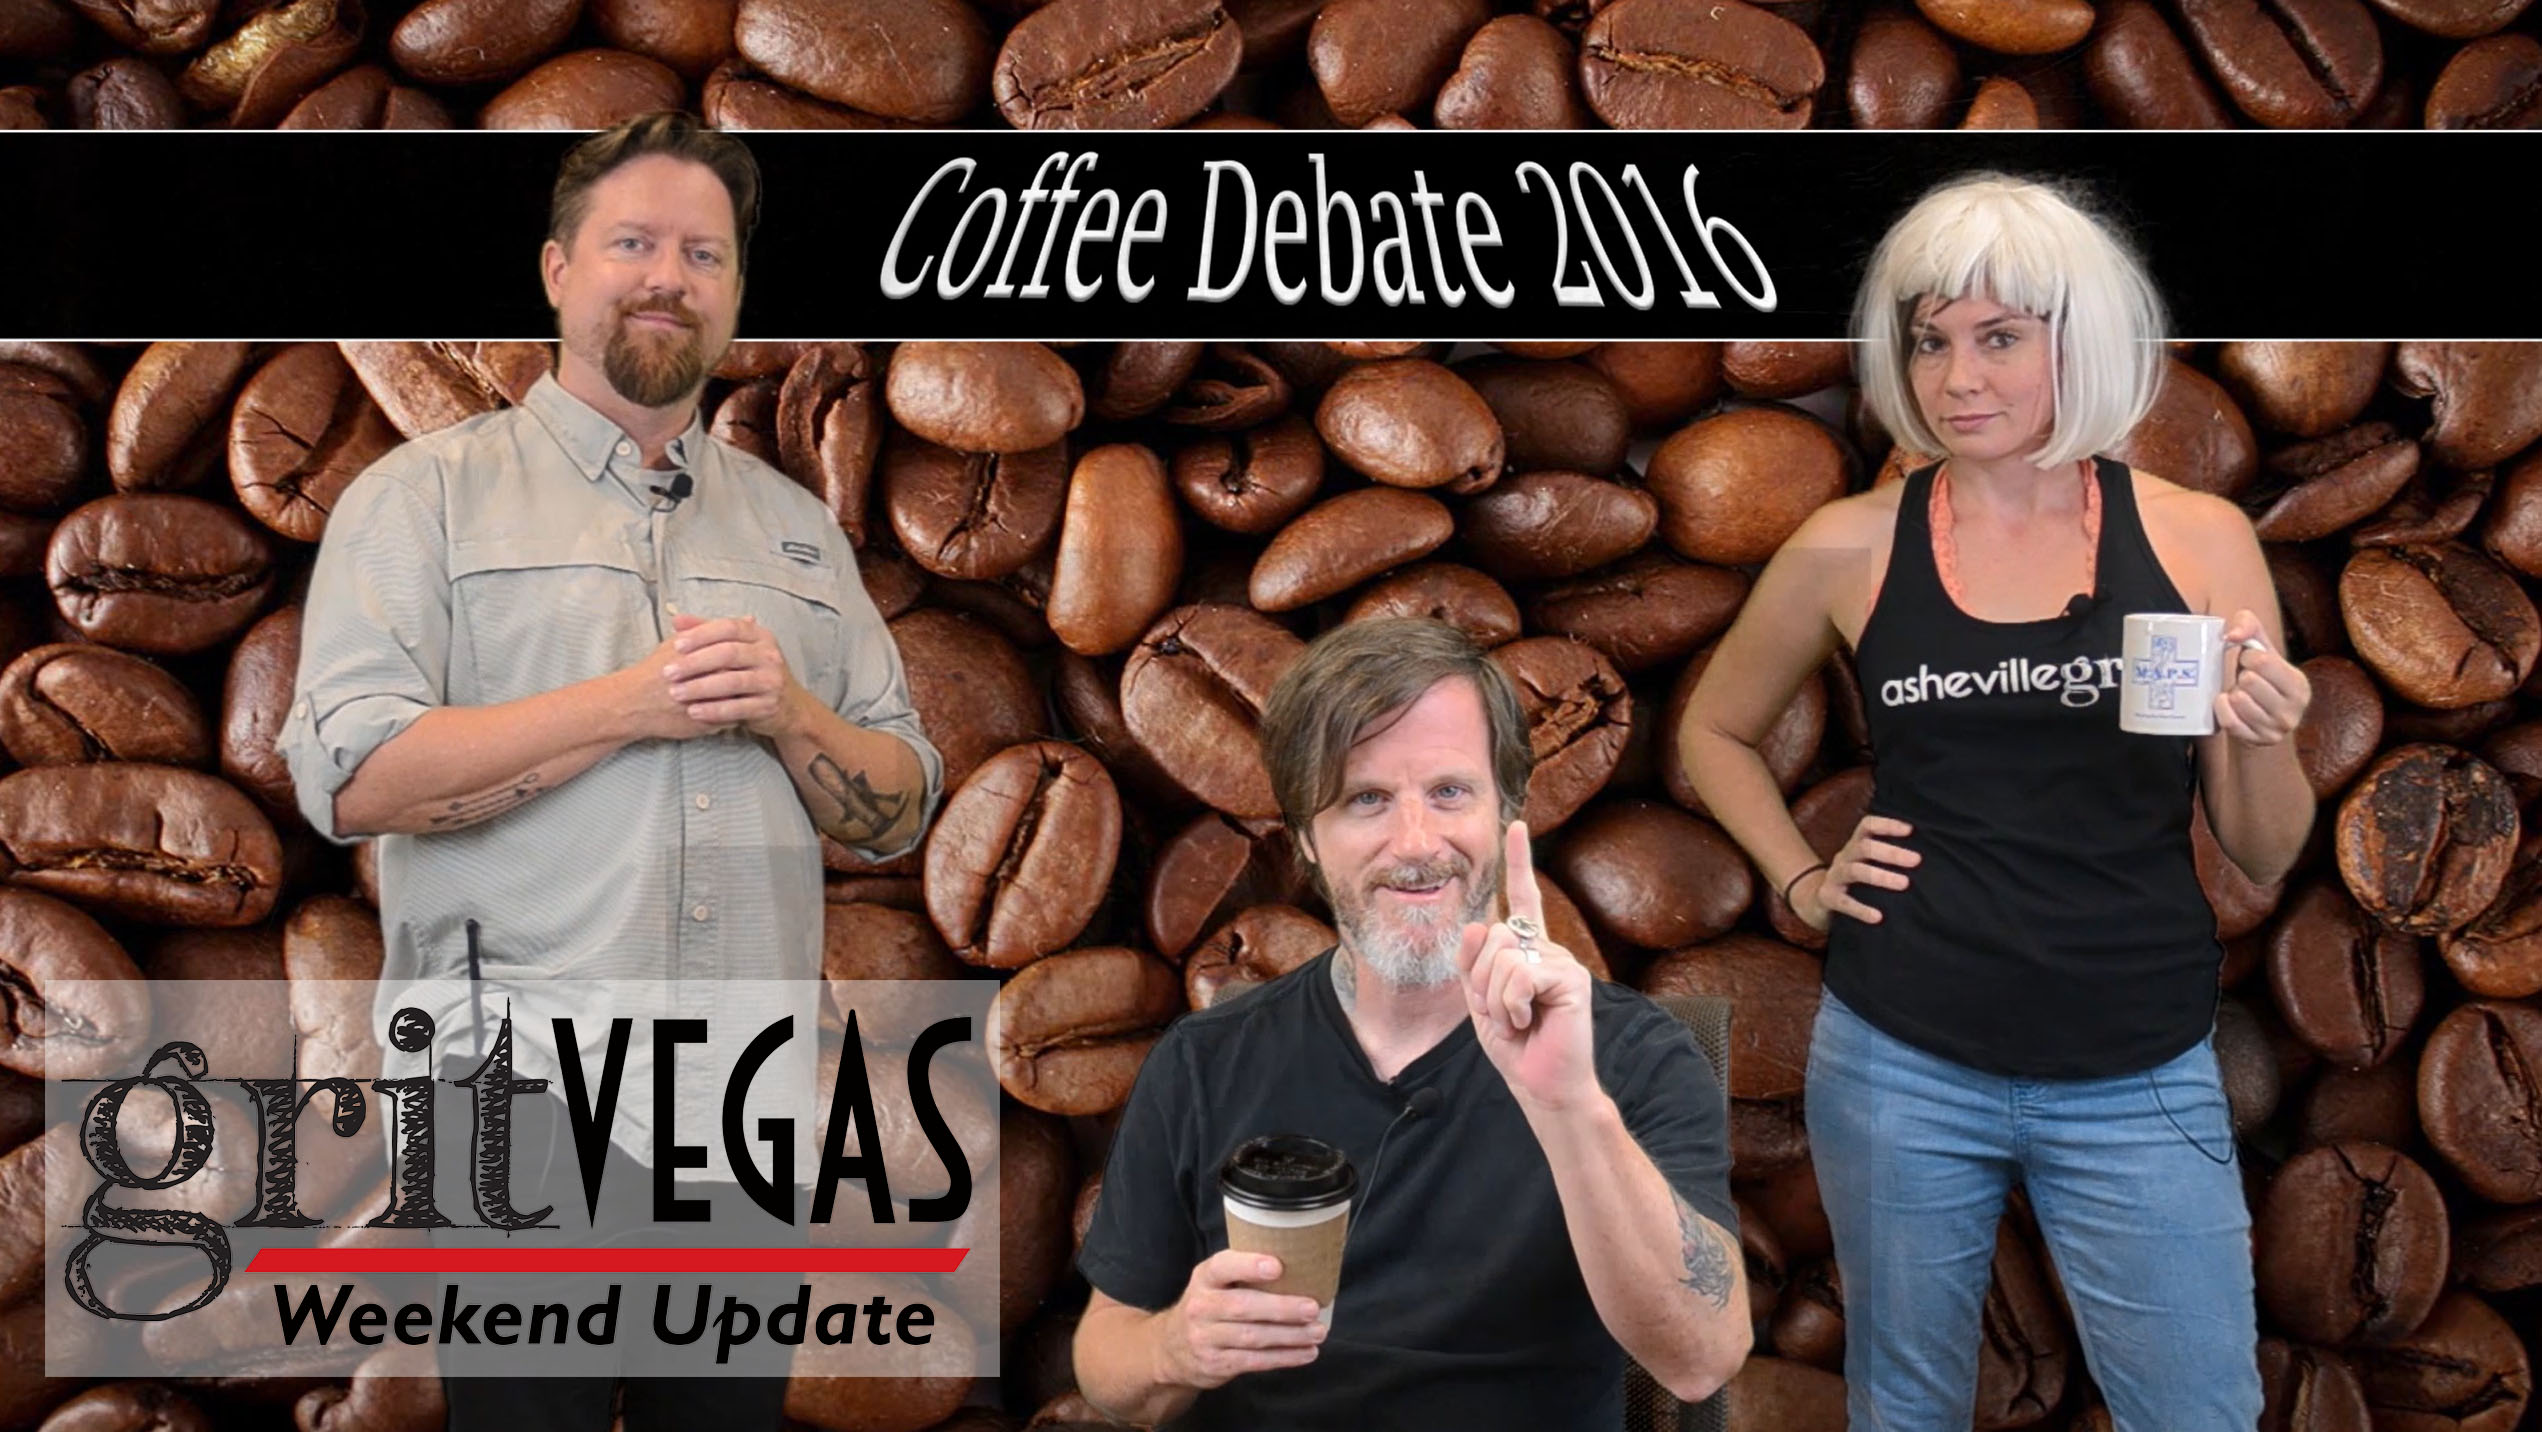 The GritVegas Weekend Update for Sept. 29th